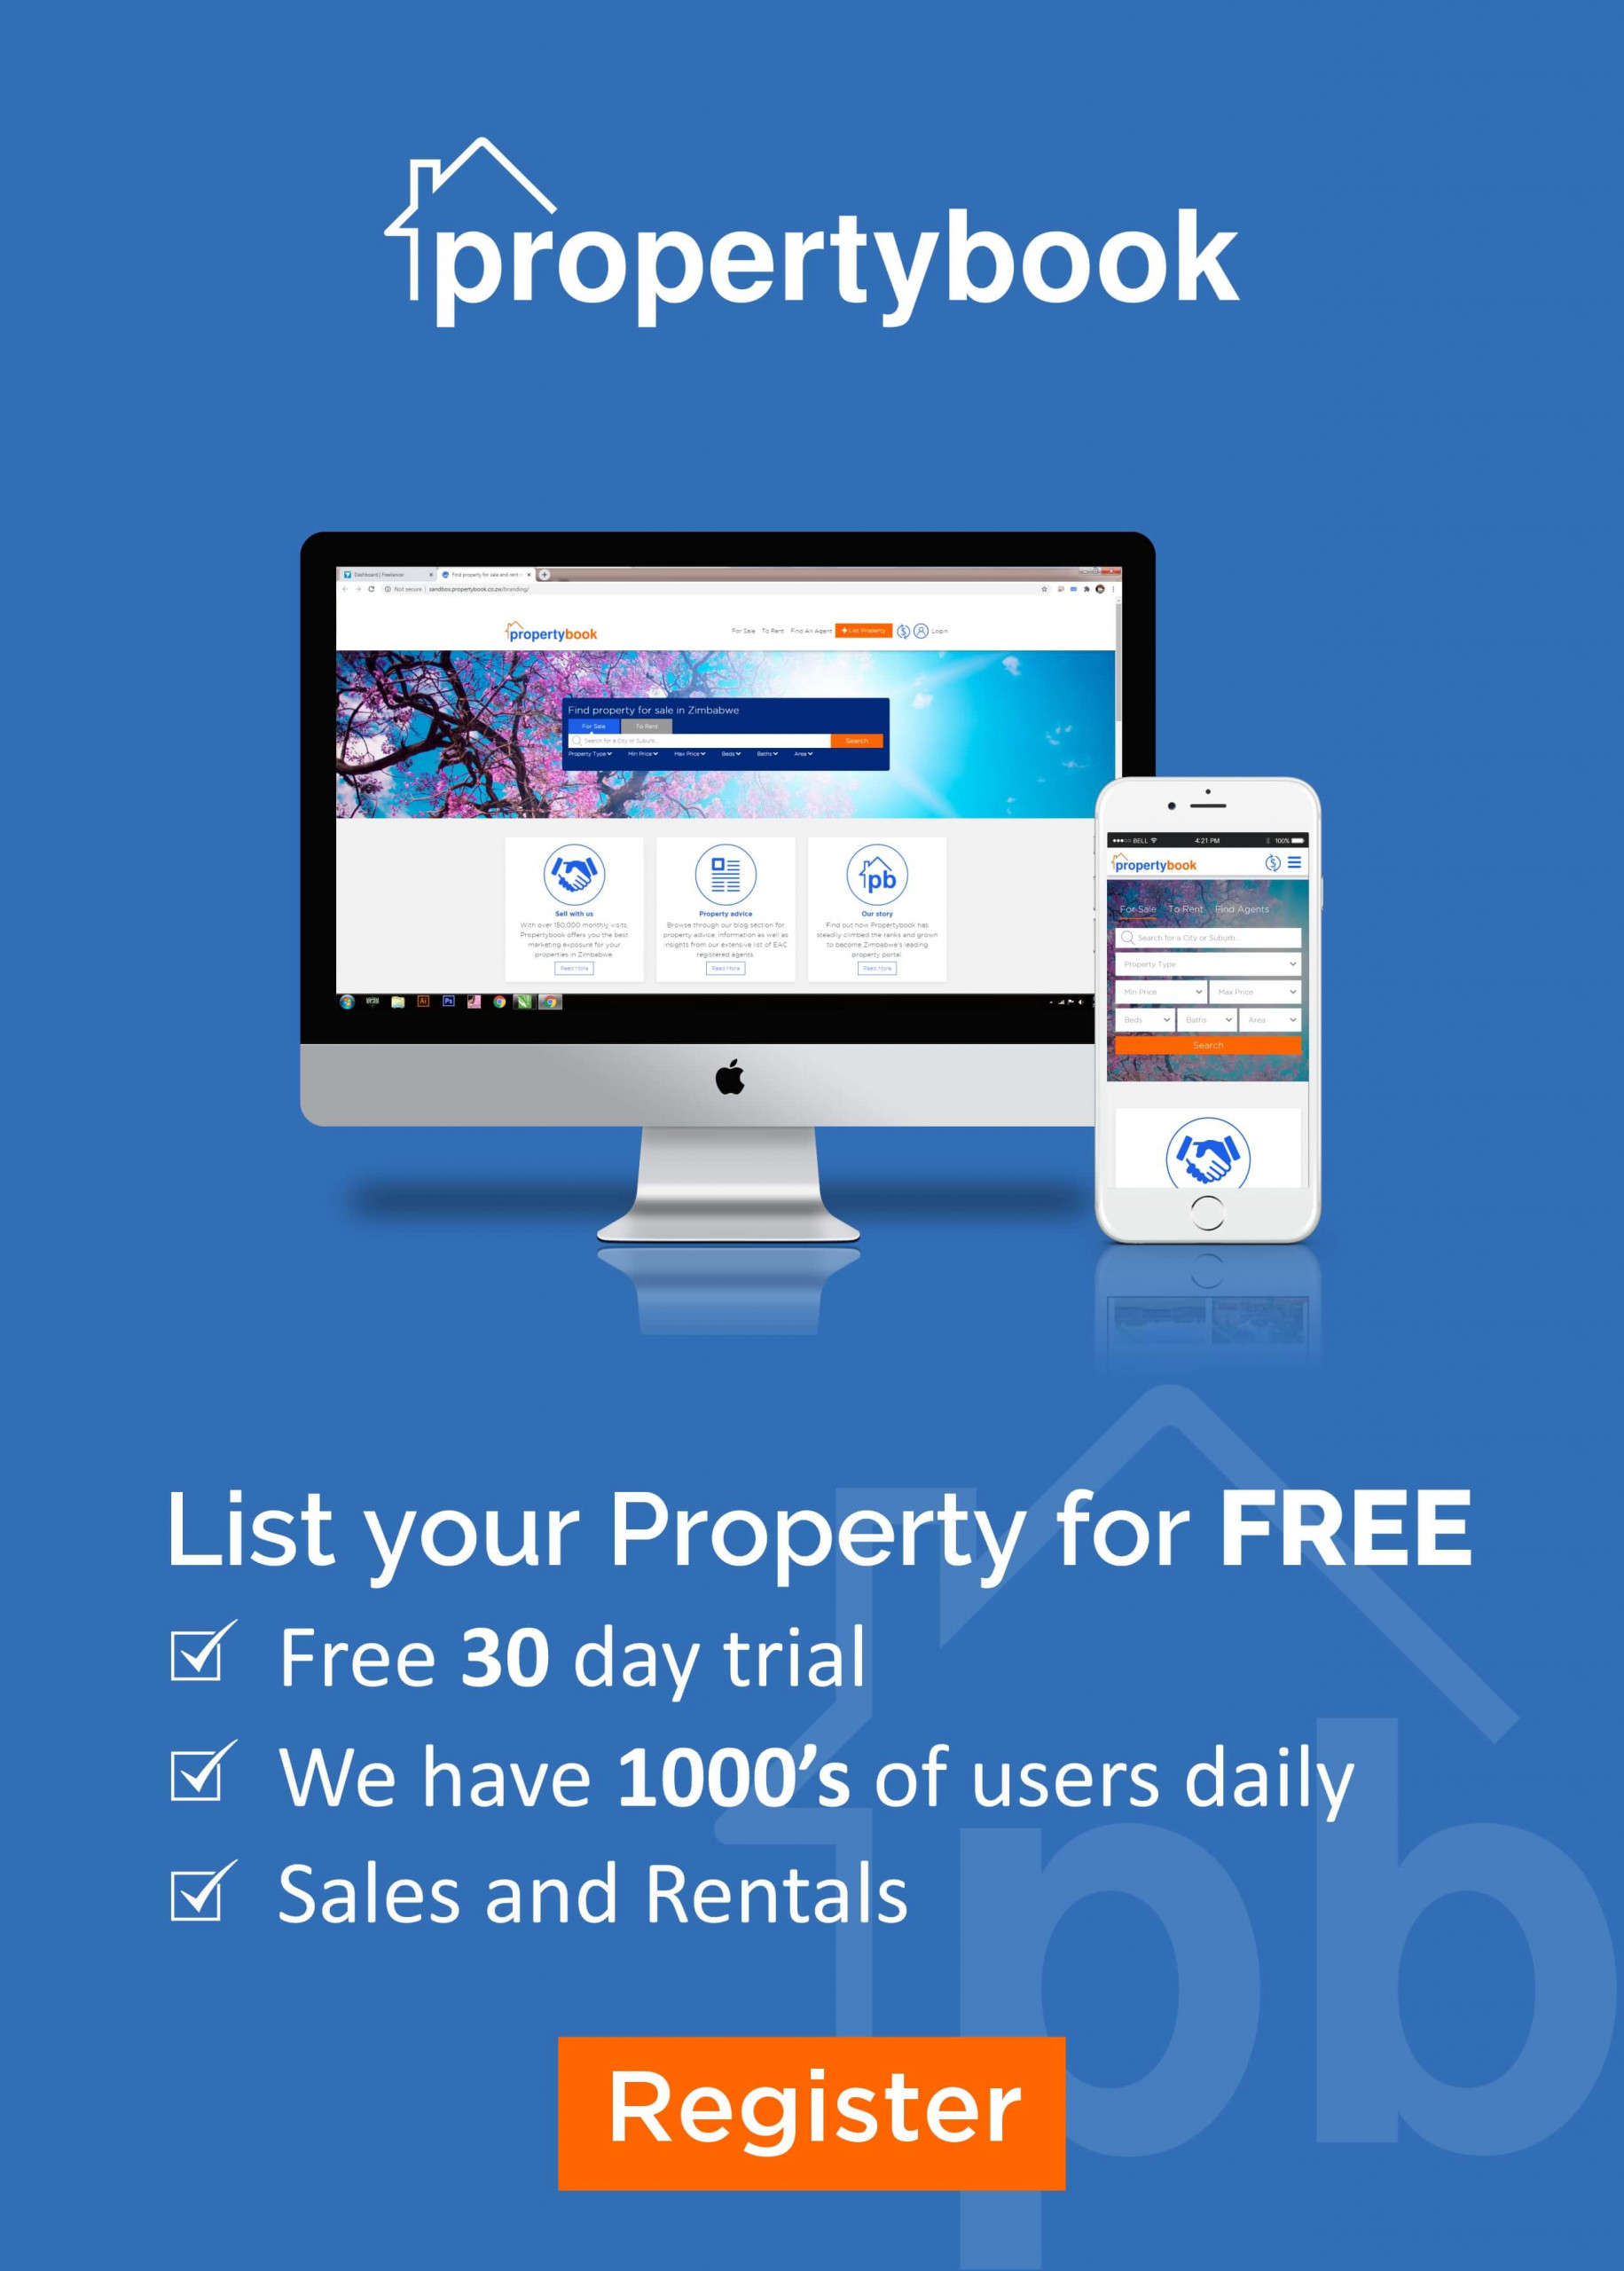 Propertybook.co.zw